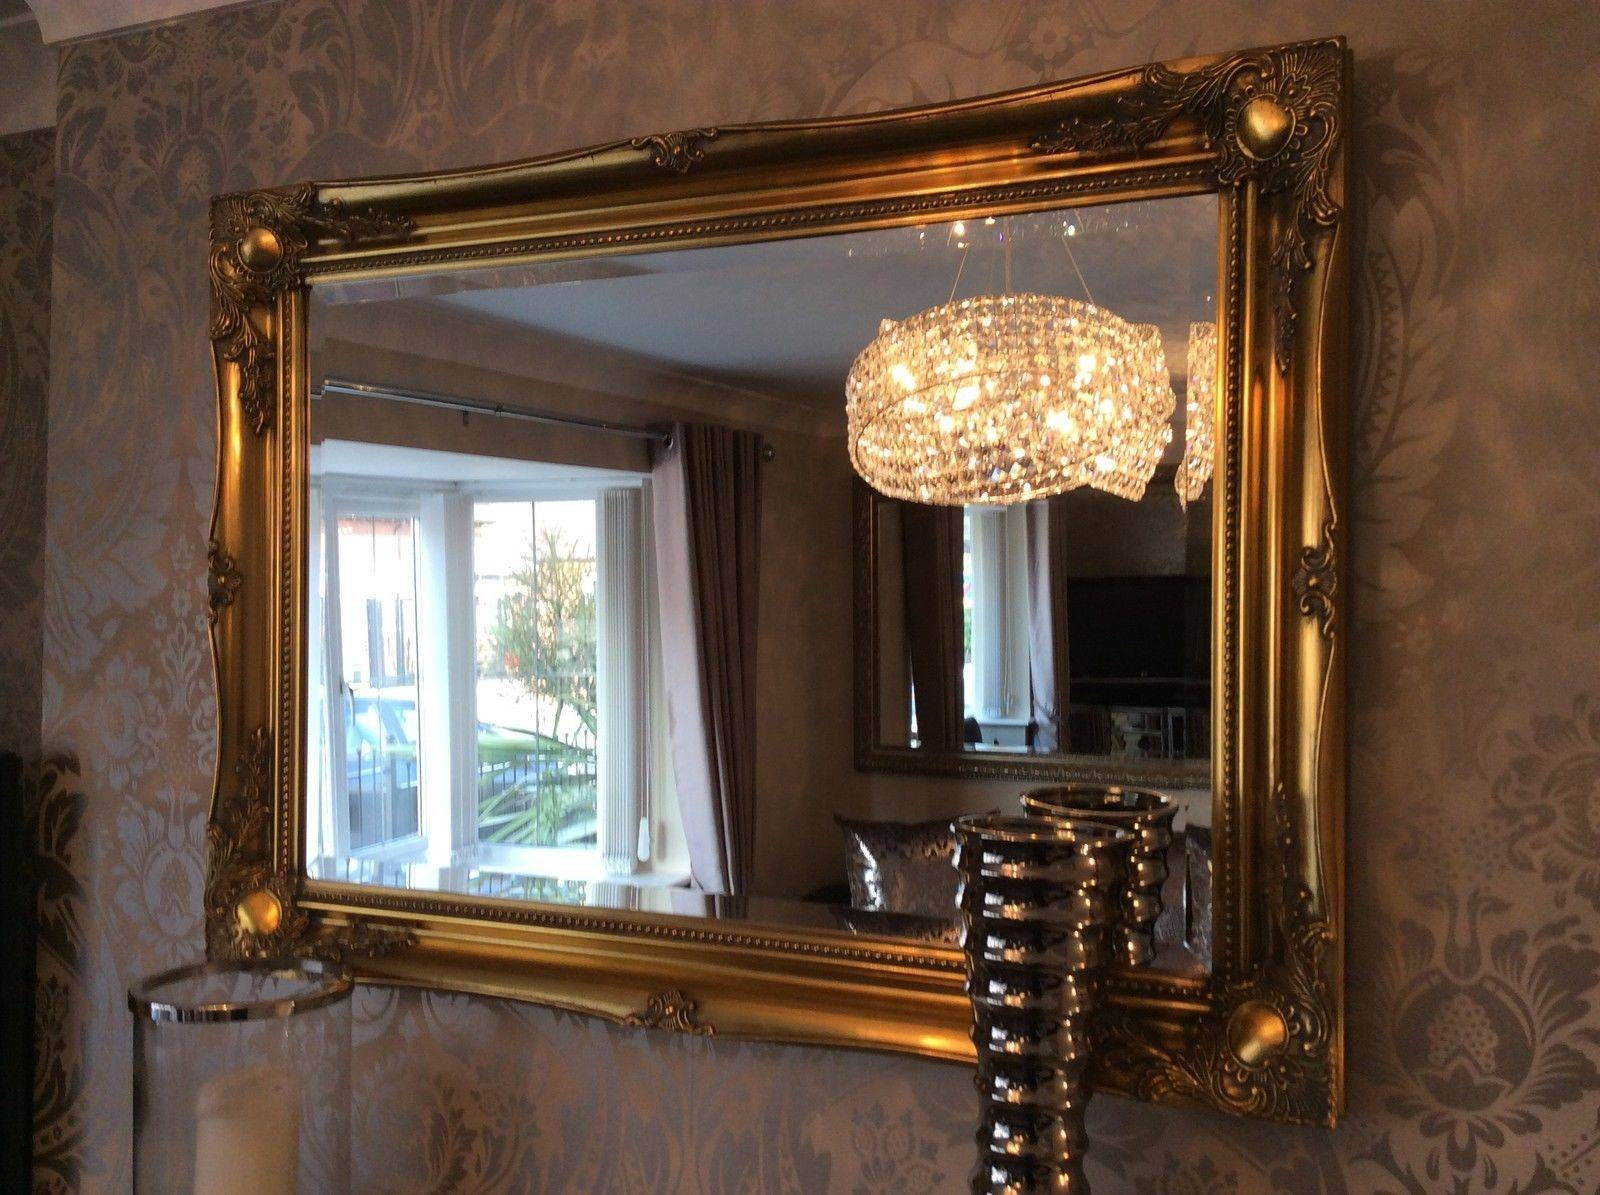 Download Decorative Gold Mirrors | Gen4Congress pertaining to Large Ornate White Mirrors (Image 9 of 25)